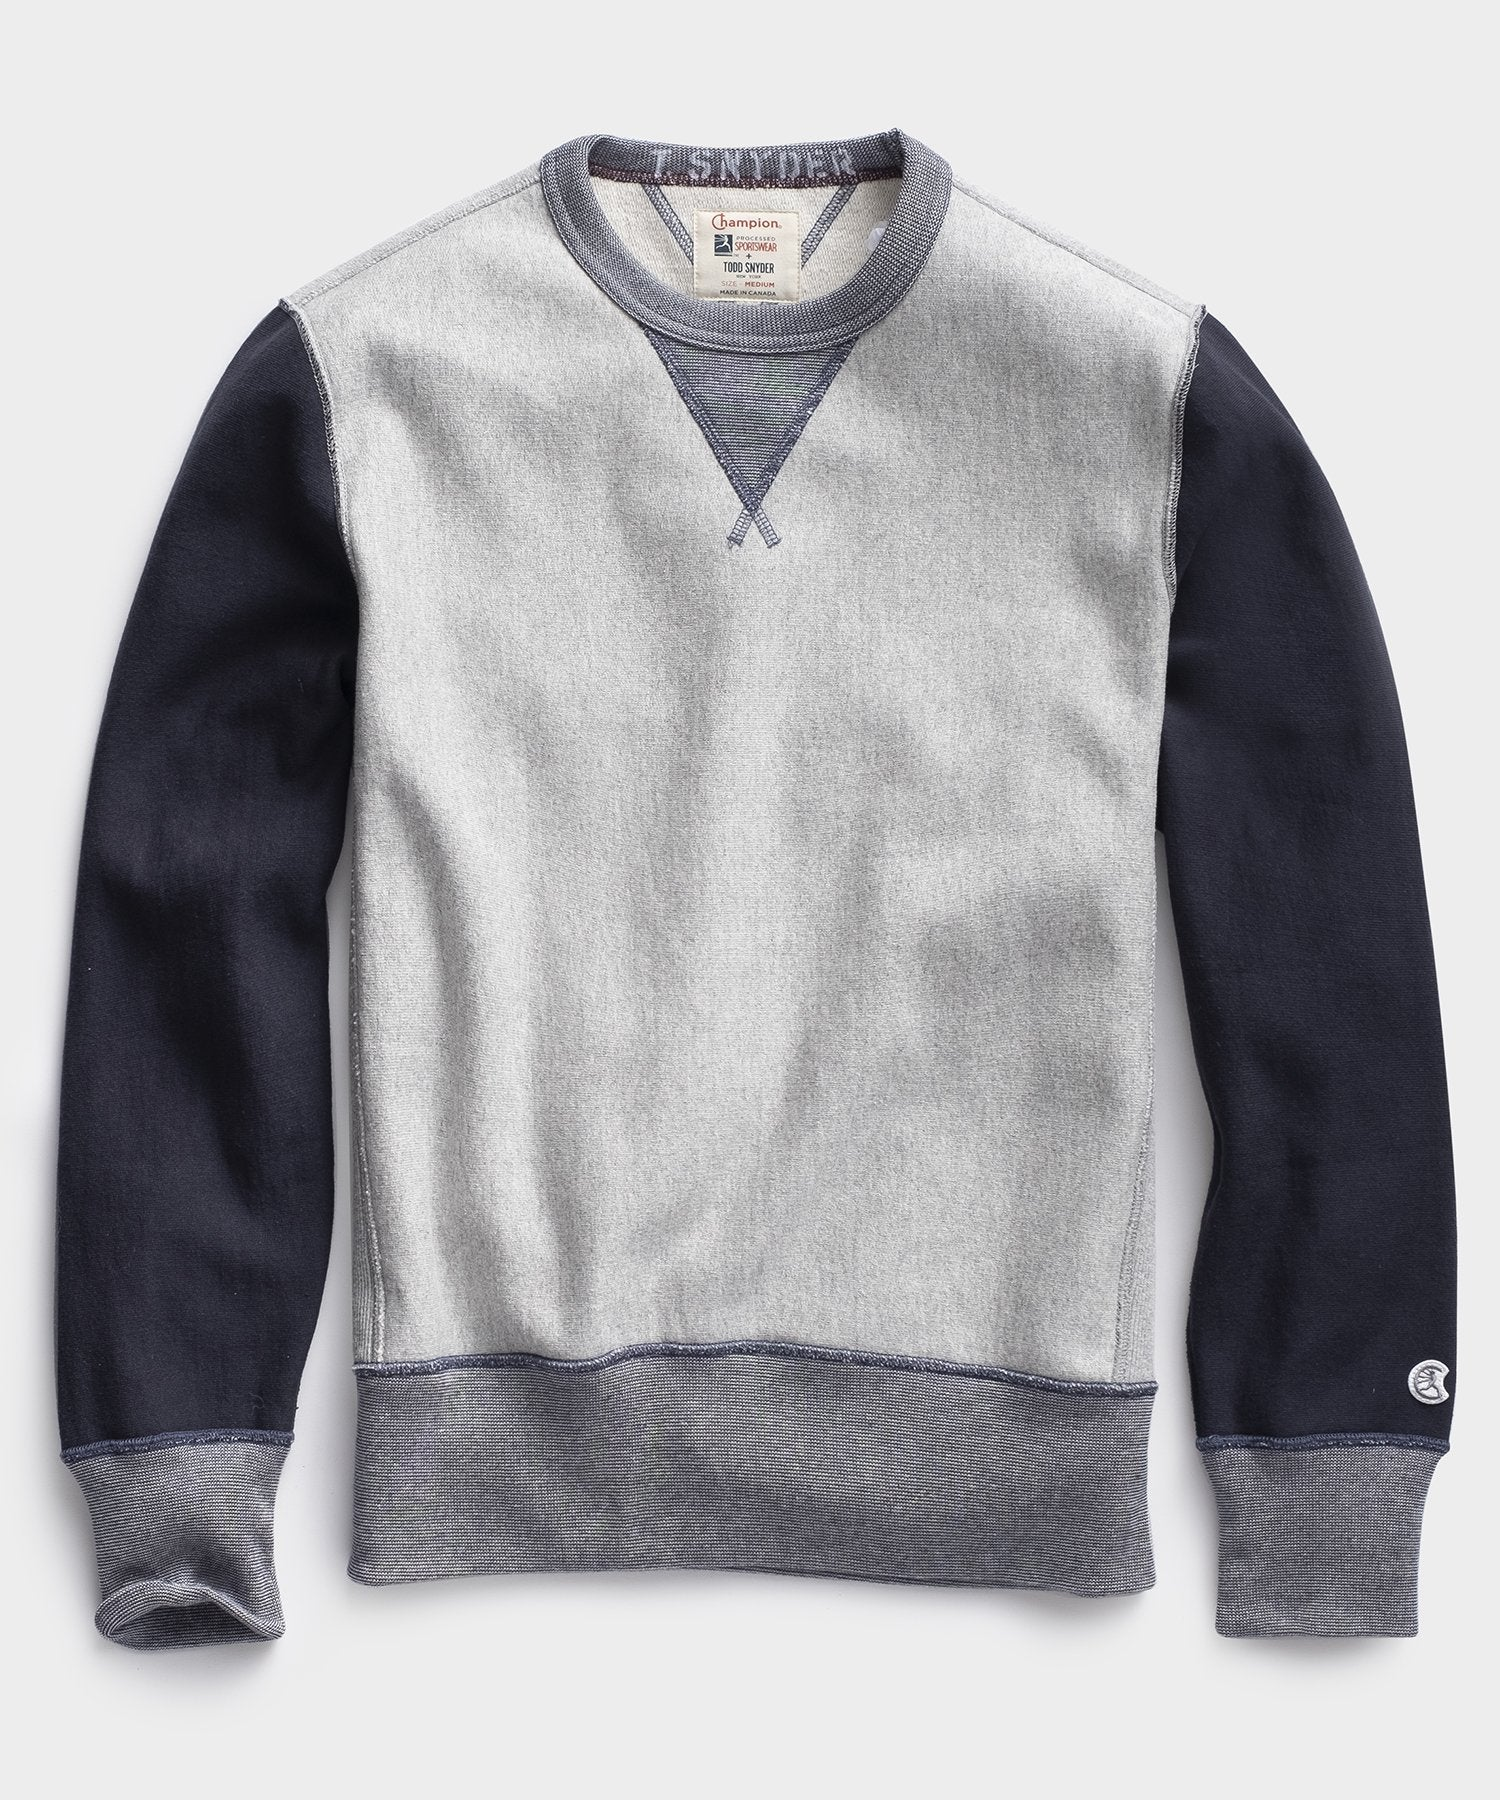 Colorblock Sweatshirt in Grey Mix